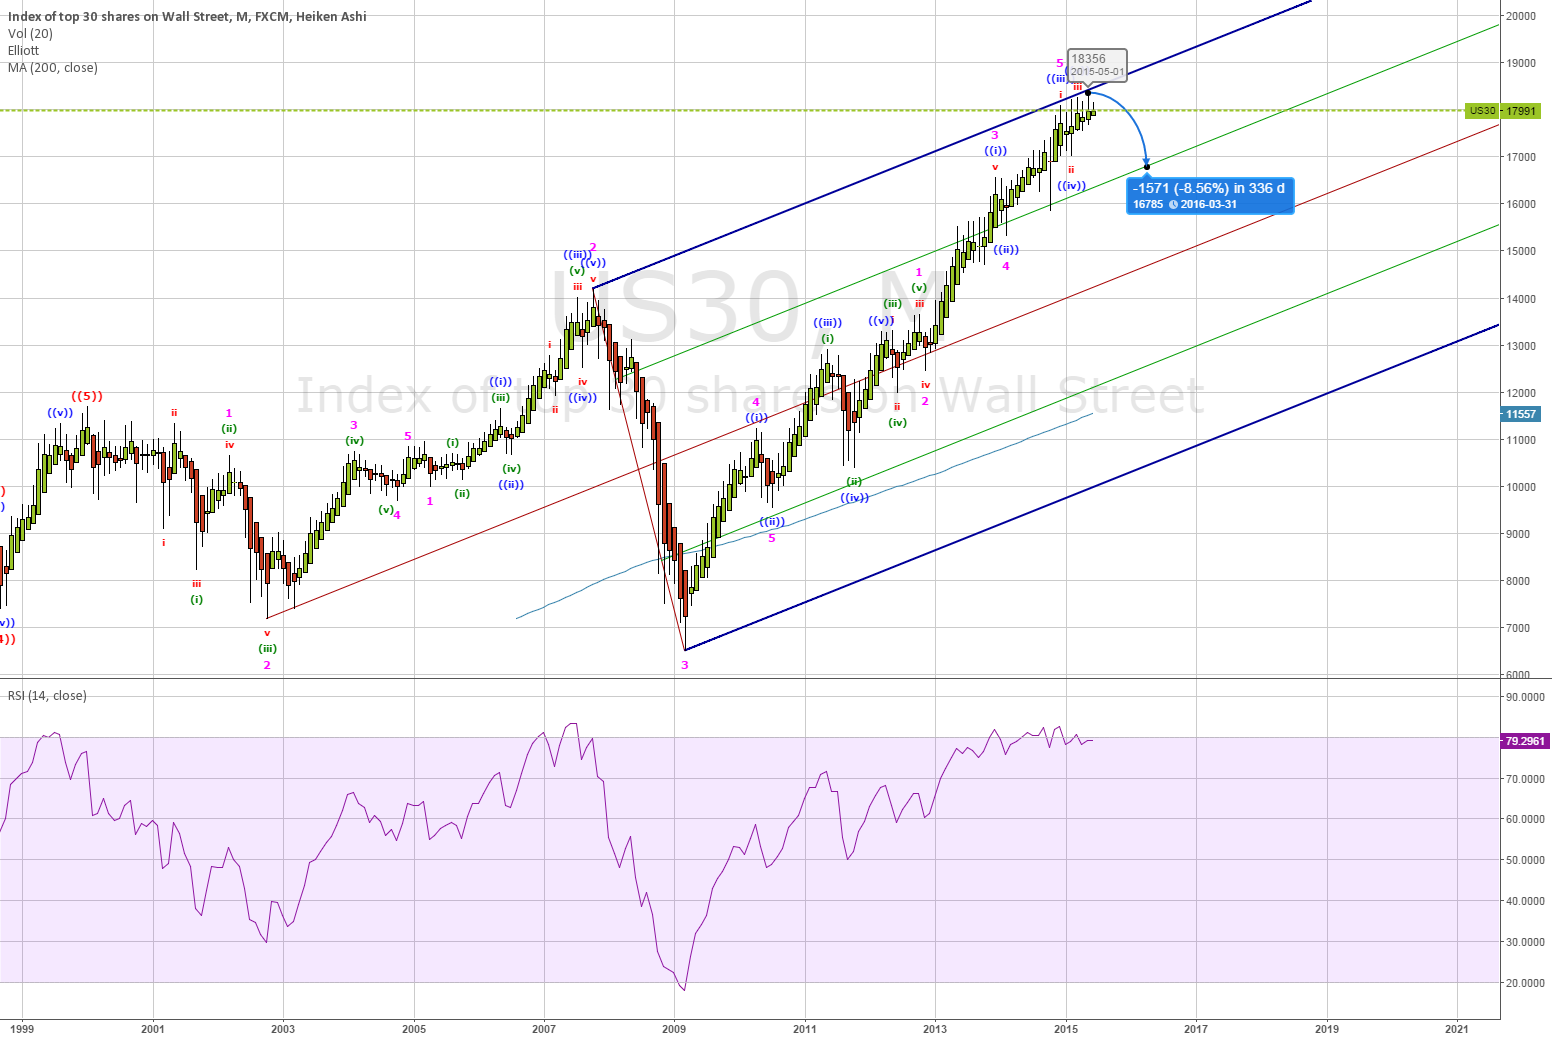 Time to sell DOW? (US30)